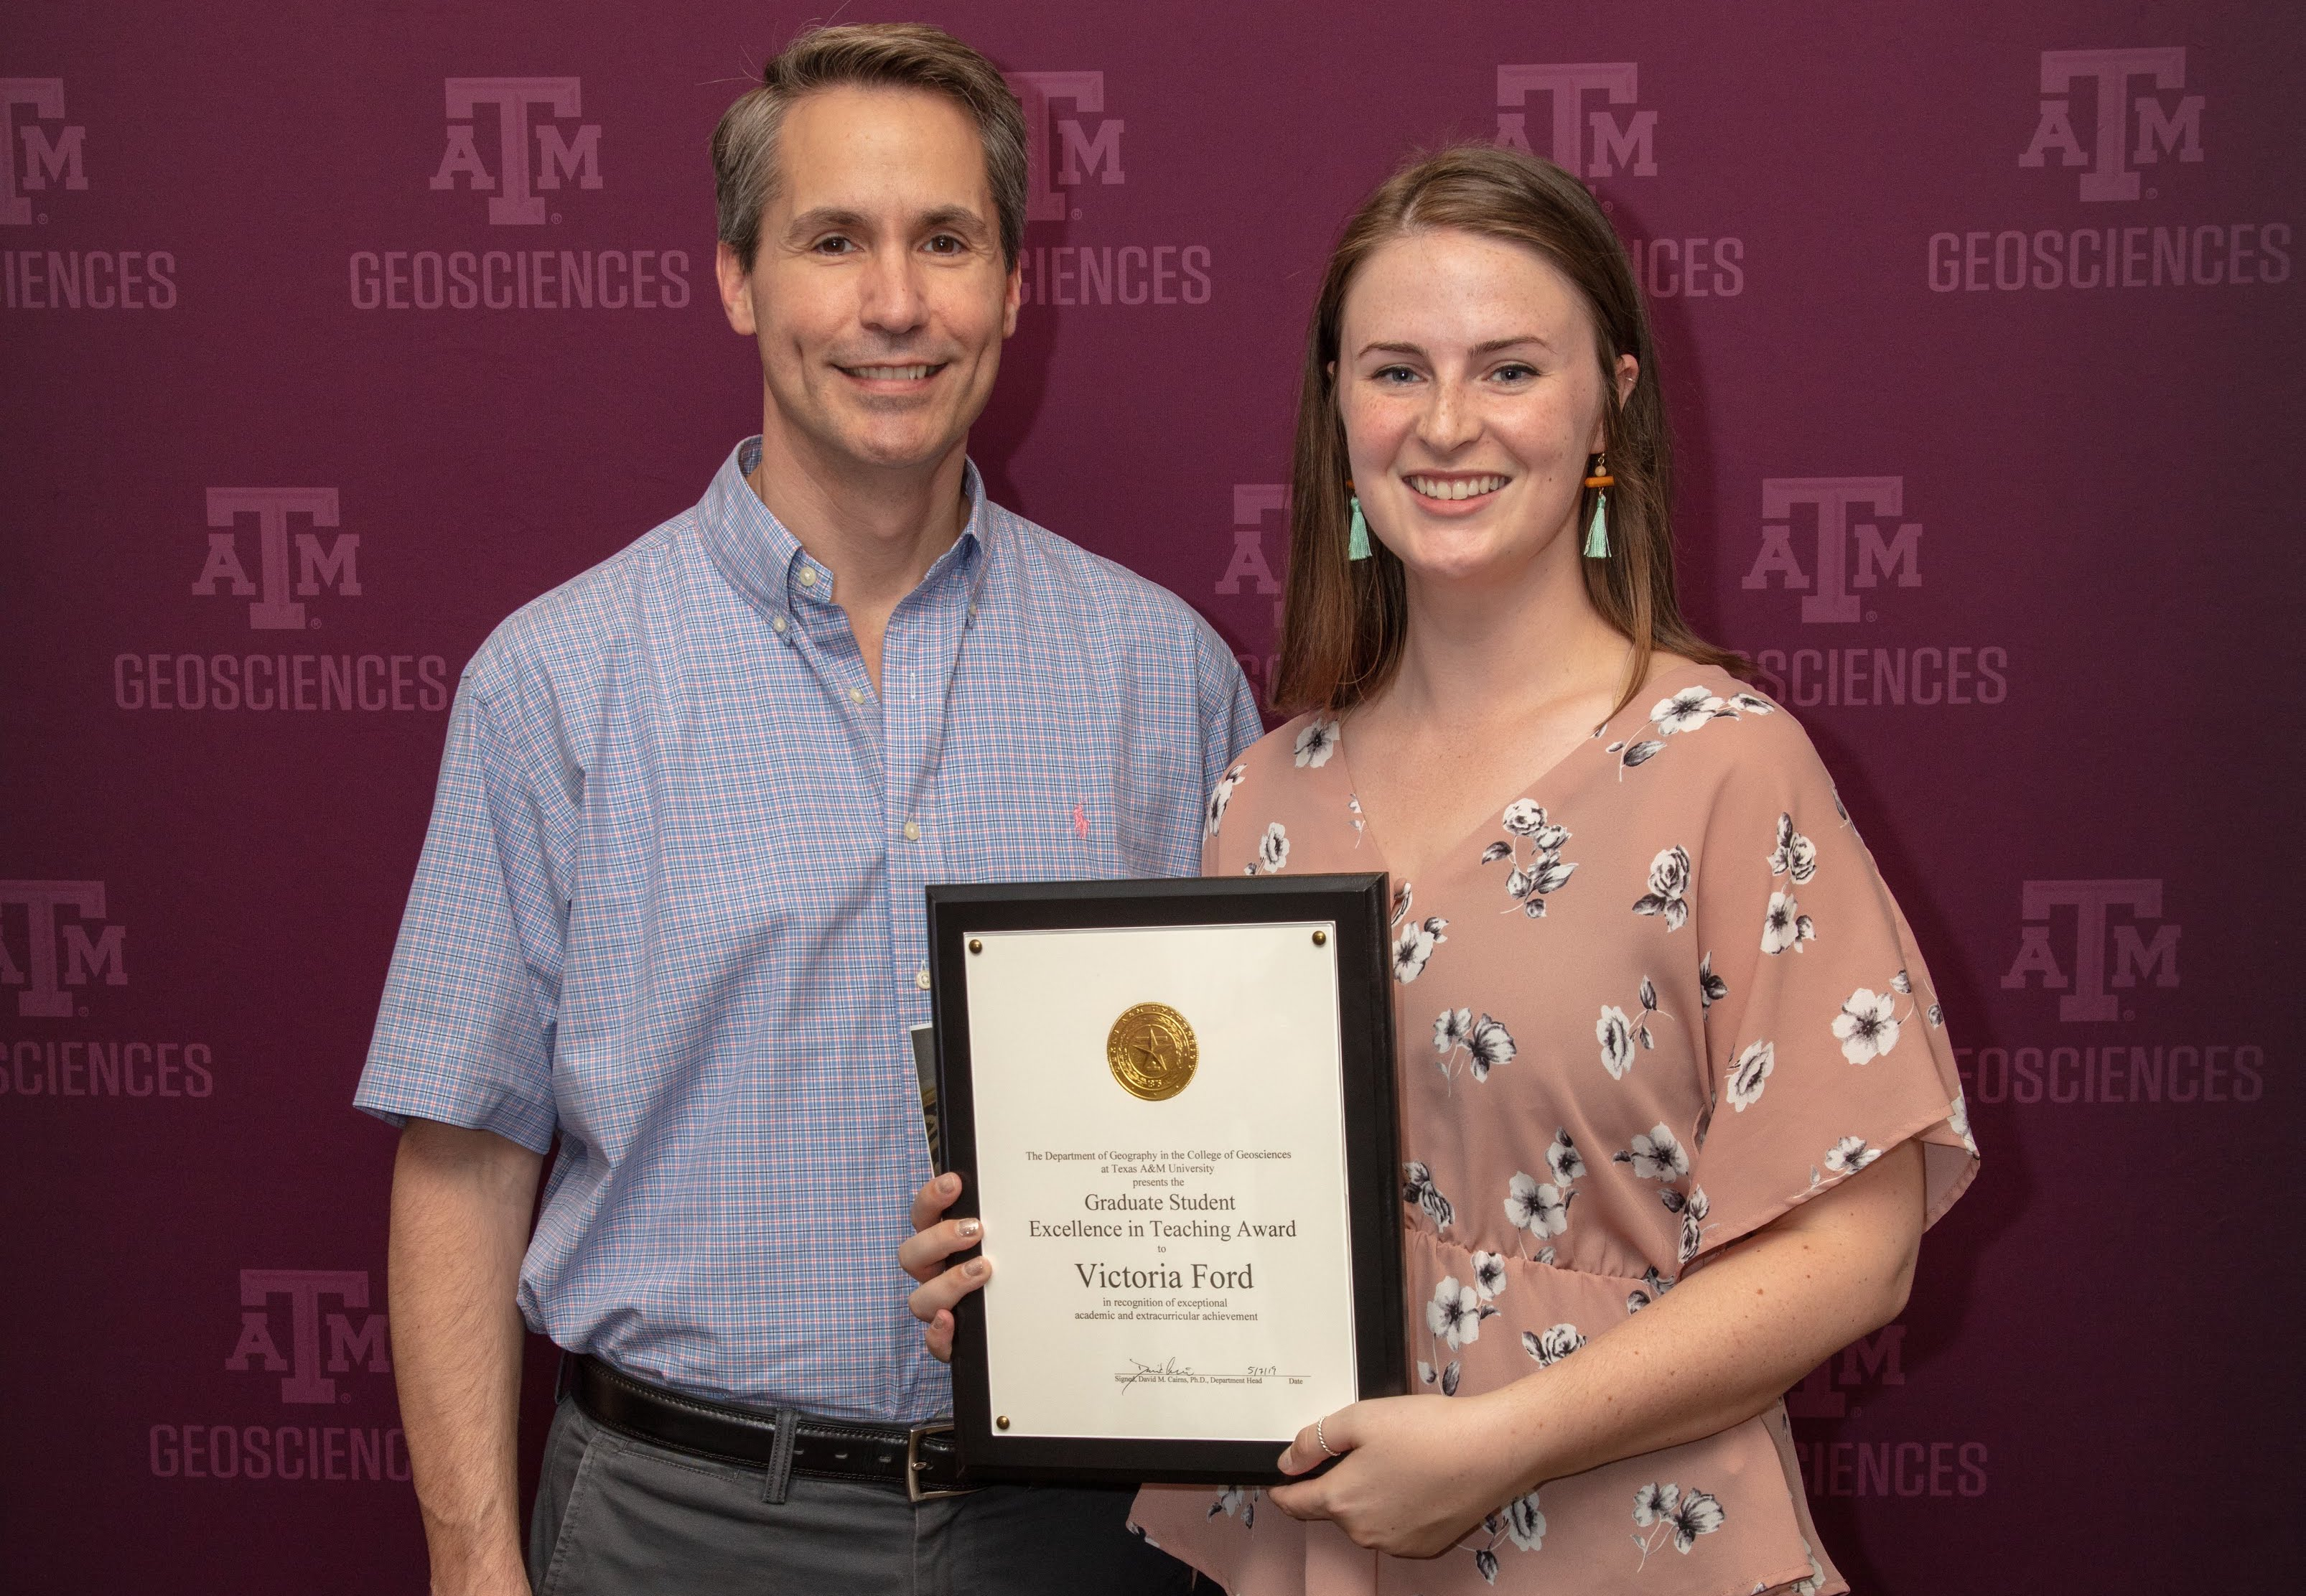 Dr. Frauenfeld and Victoria Ford at the 2019 graduation reception